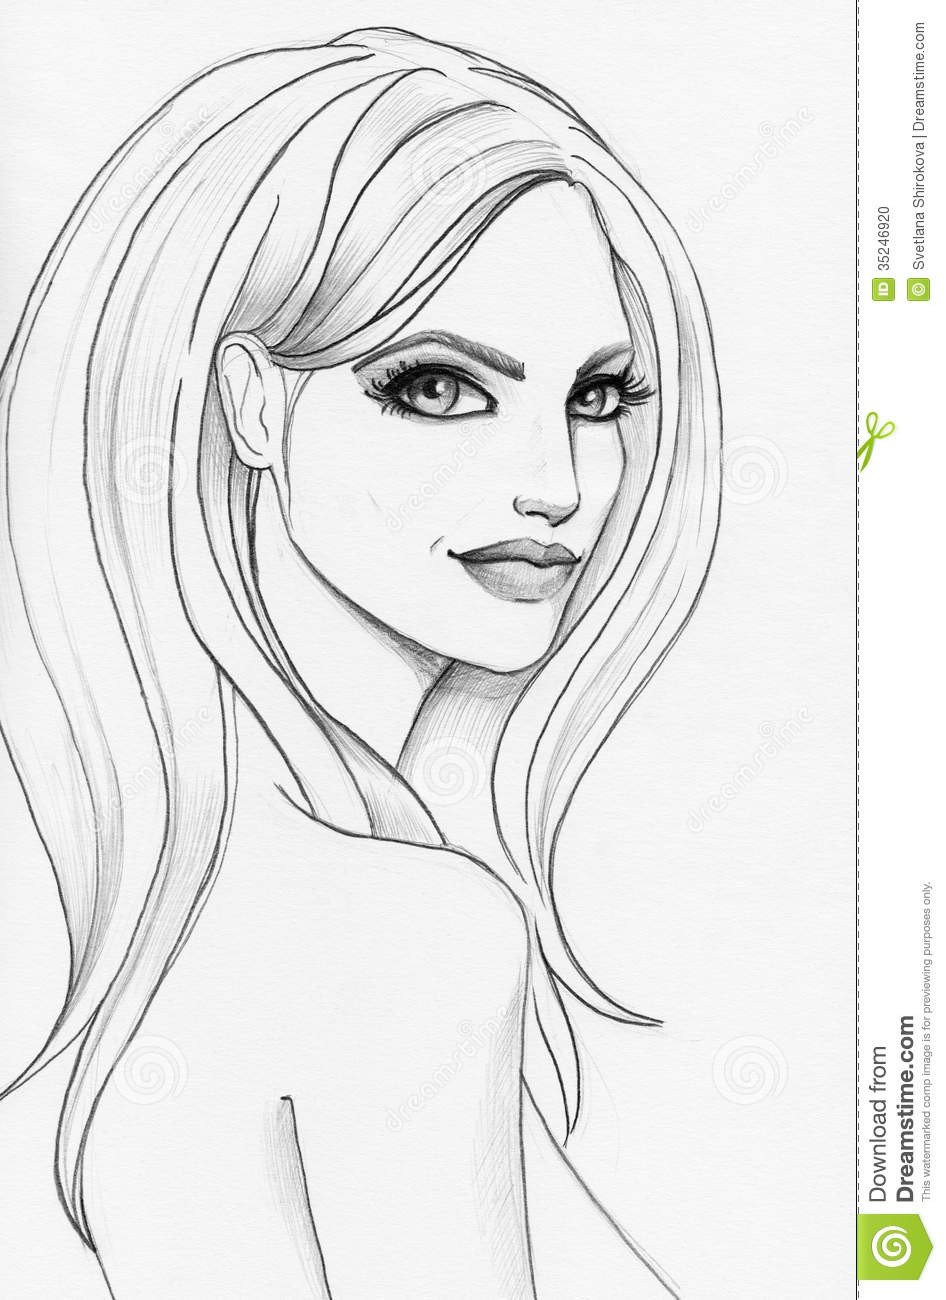 Sketch Of A Girl Pencil Sketch A Beautiful Girl Stock Illustration